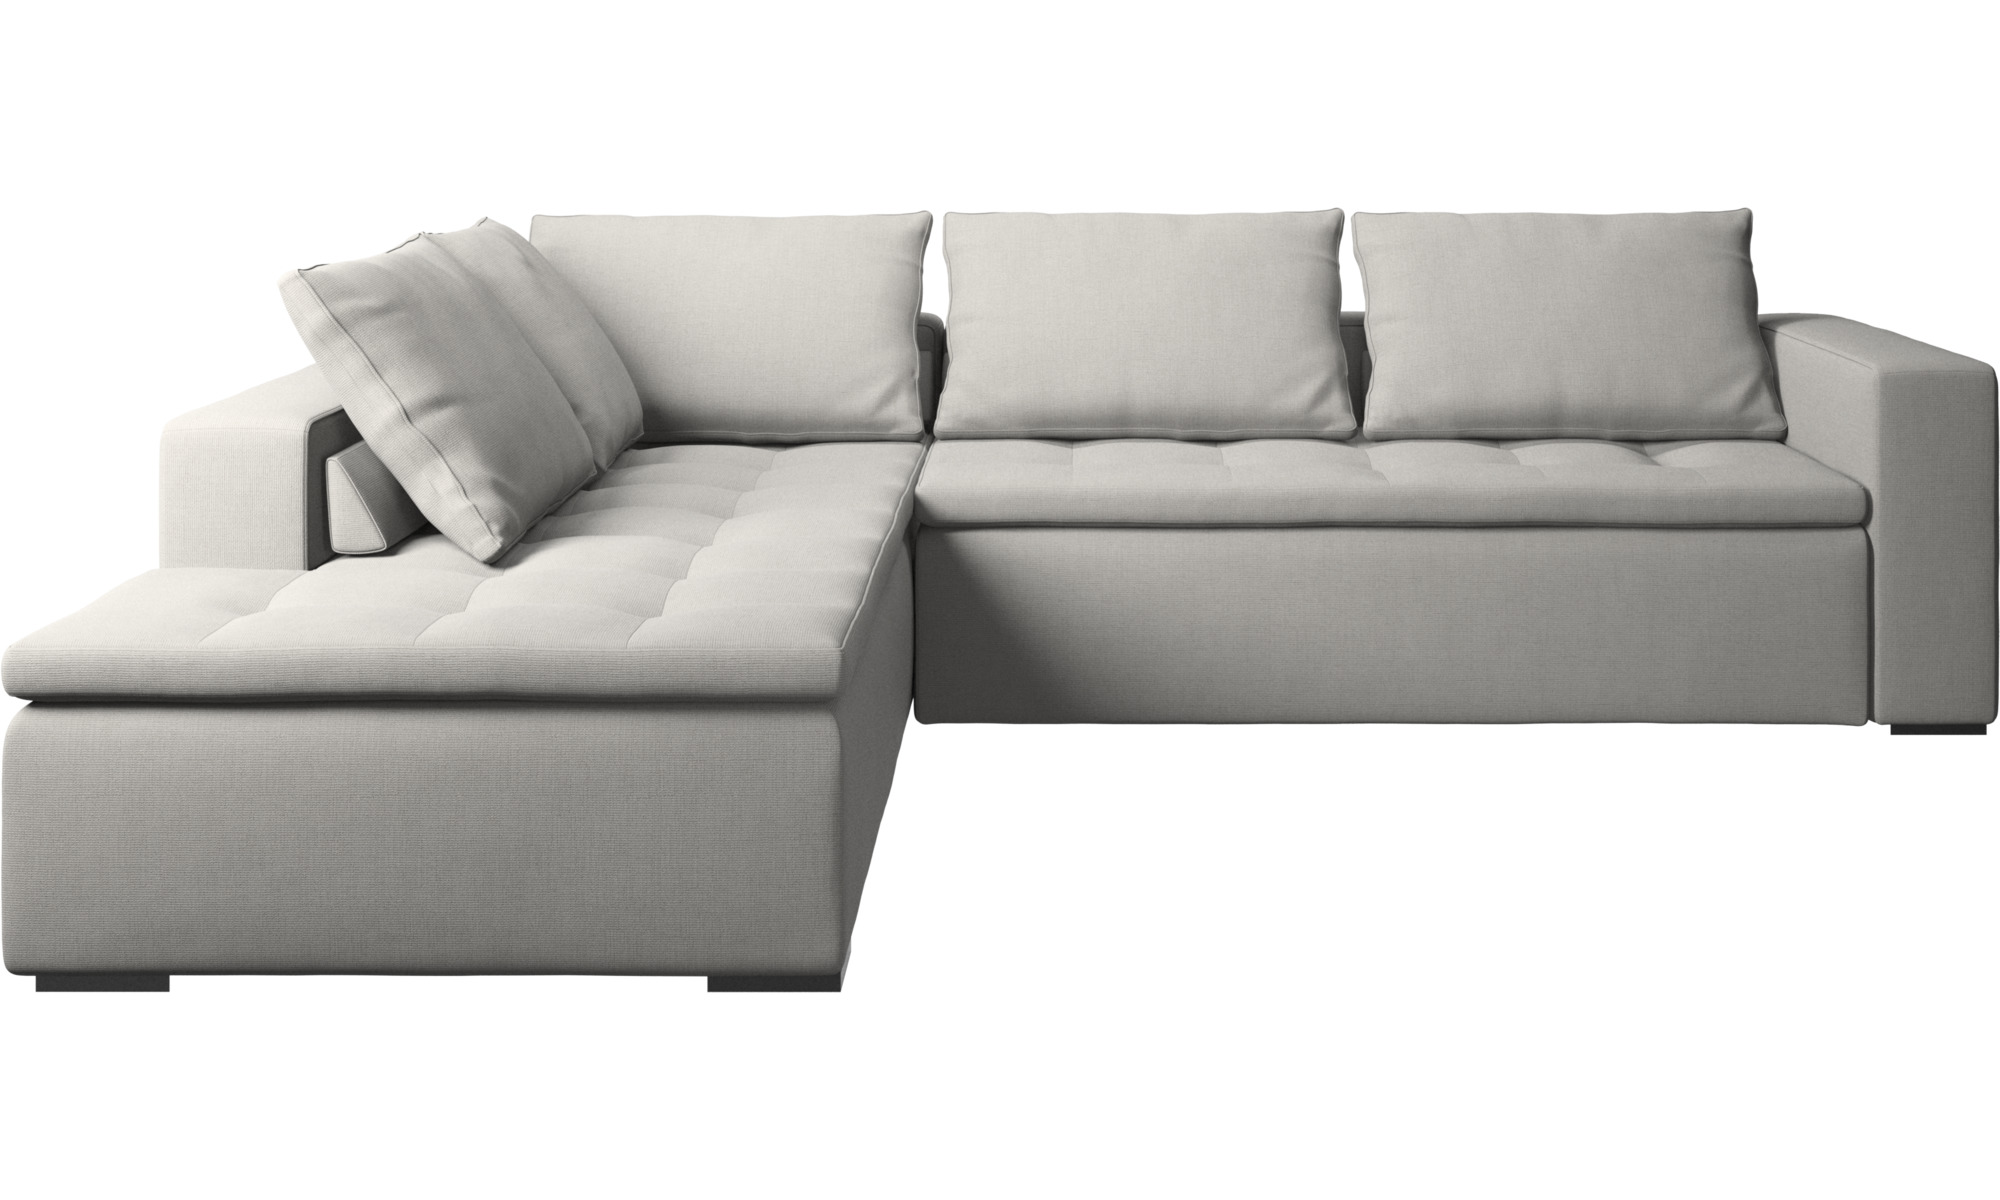 Sofas With Open End Mezzo Corner Sofa With Lounging Unit Boconcept - Sofas